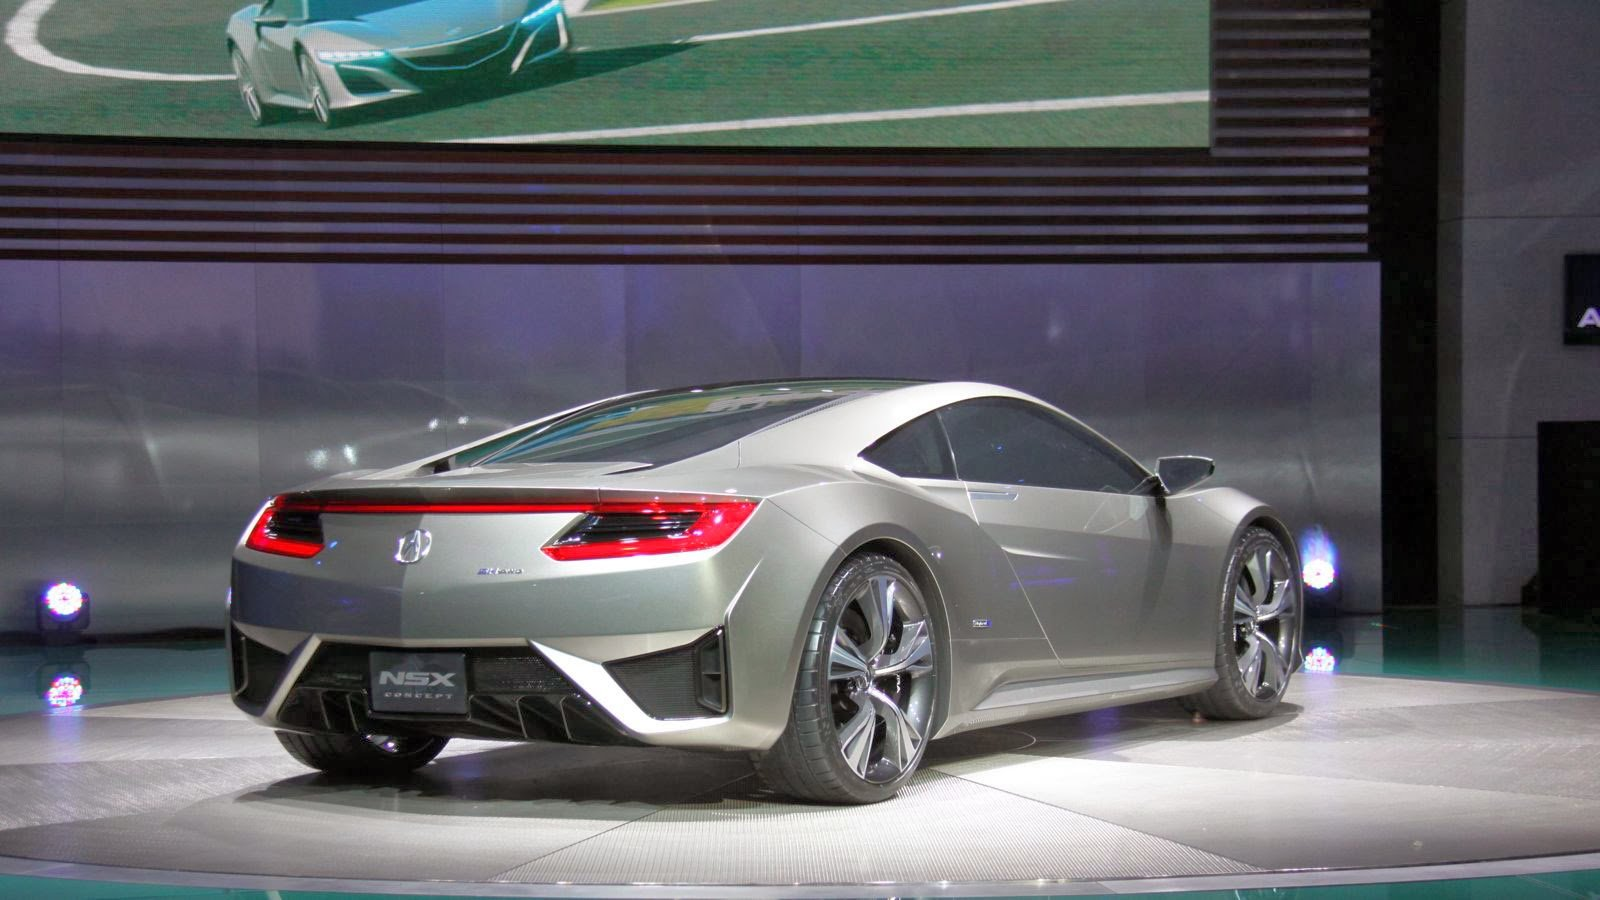 Latest Acura Nsx Car Wallpapers Media Wallpapers Free Download